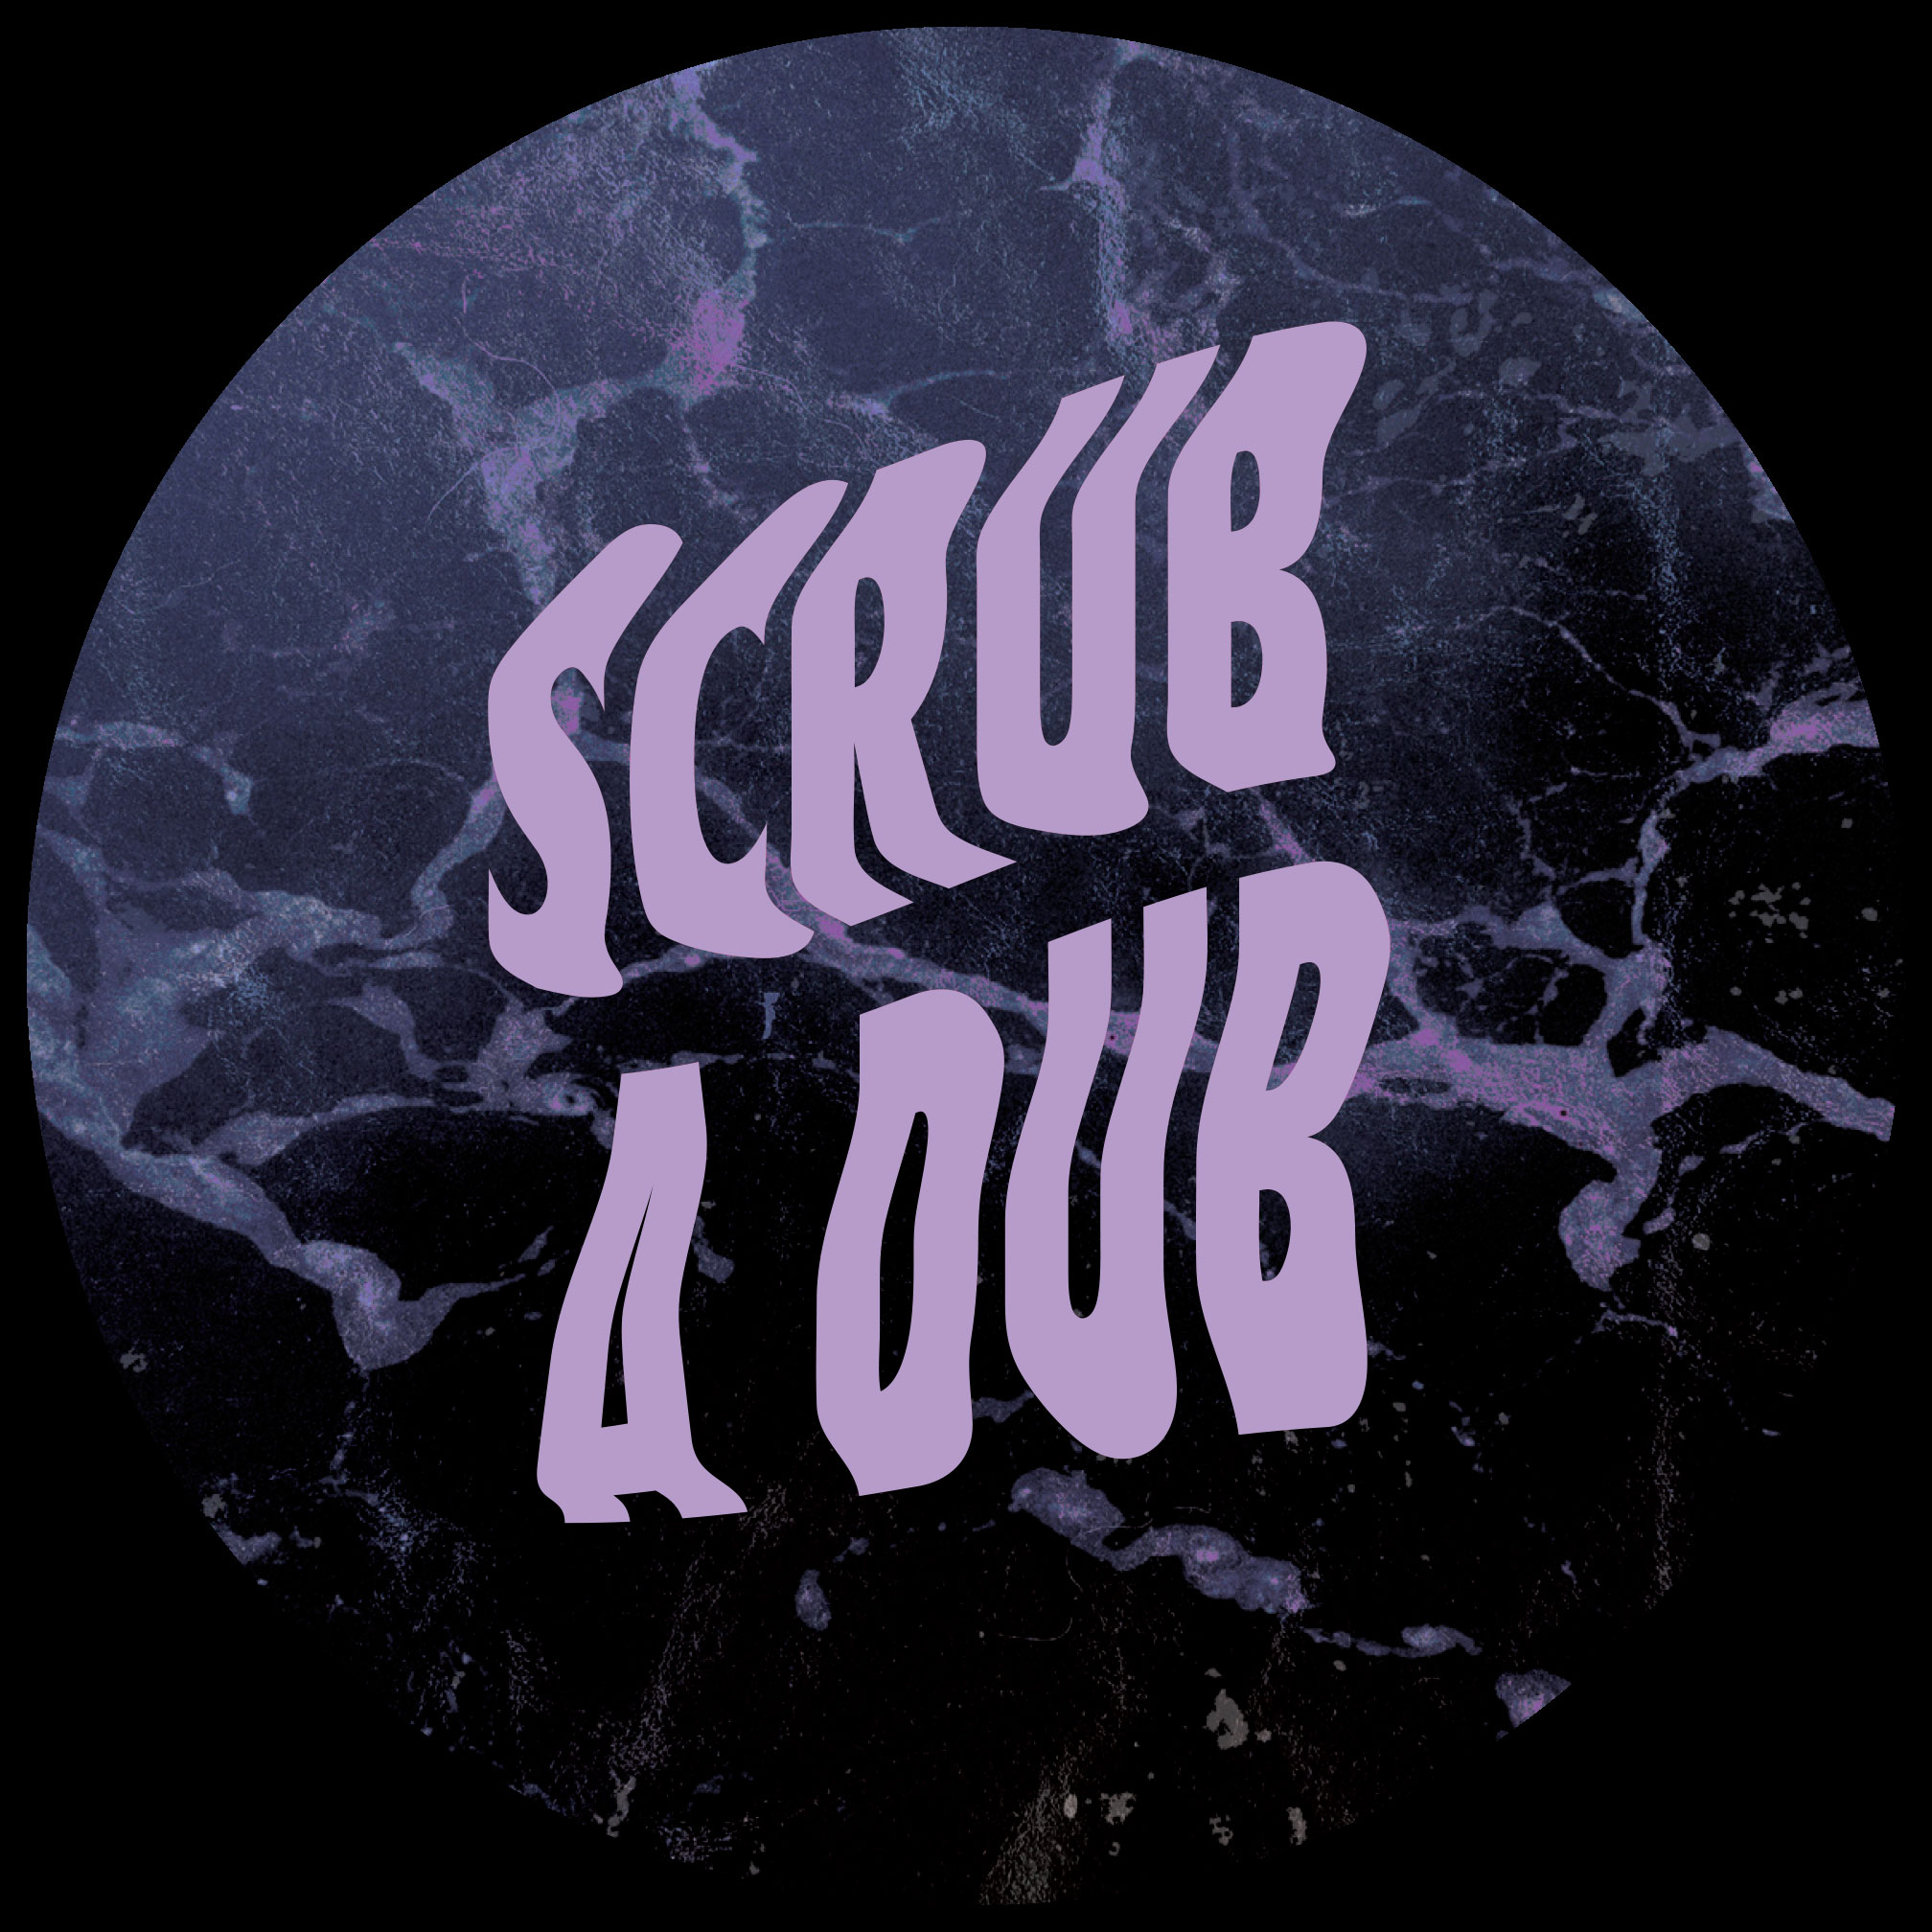 SCRUB020_Label_A